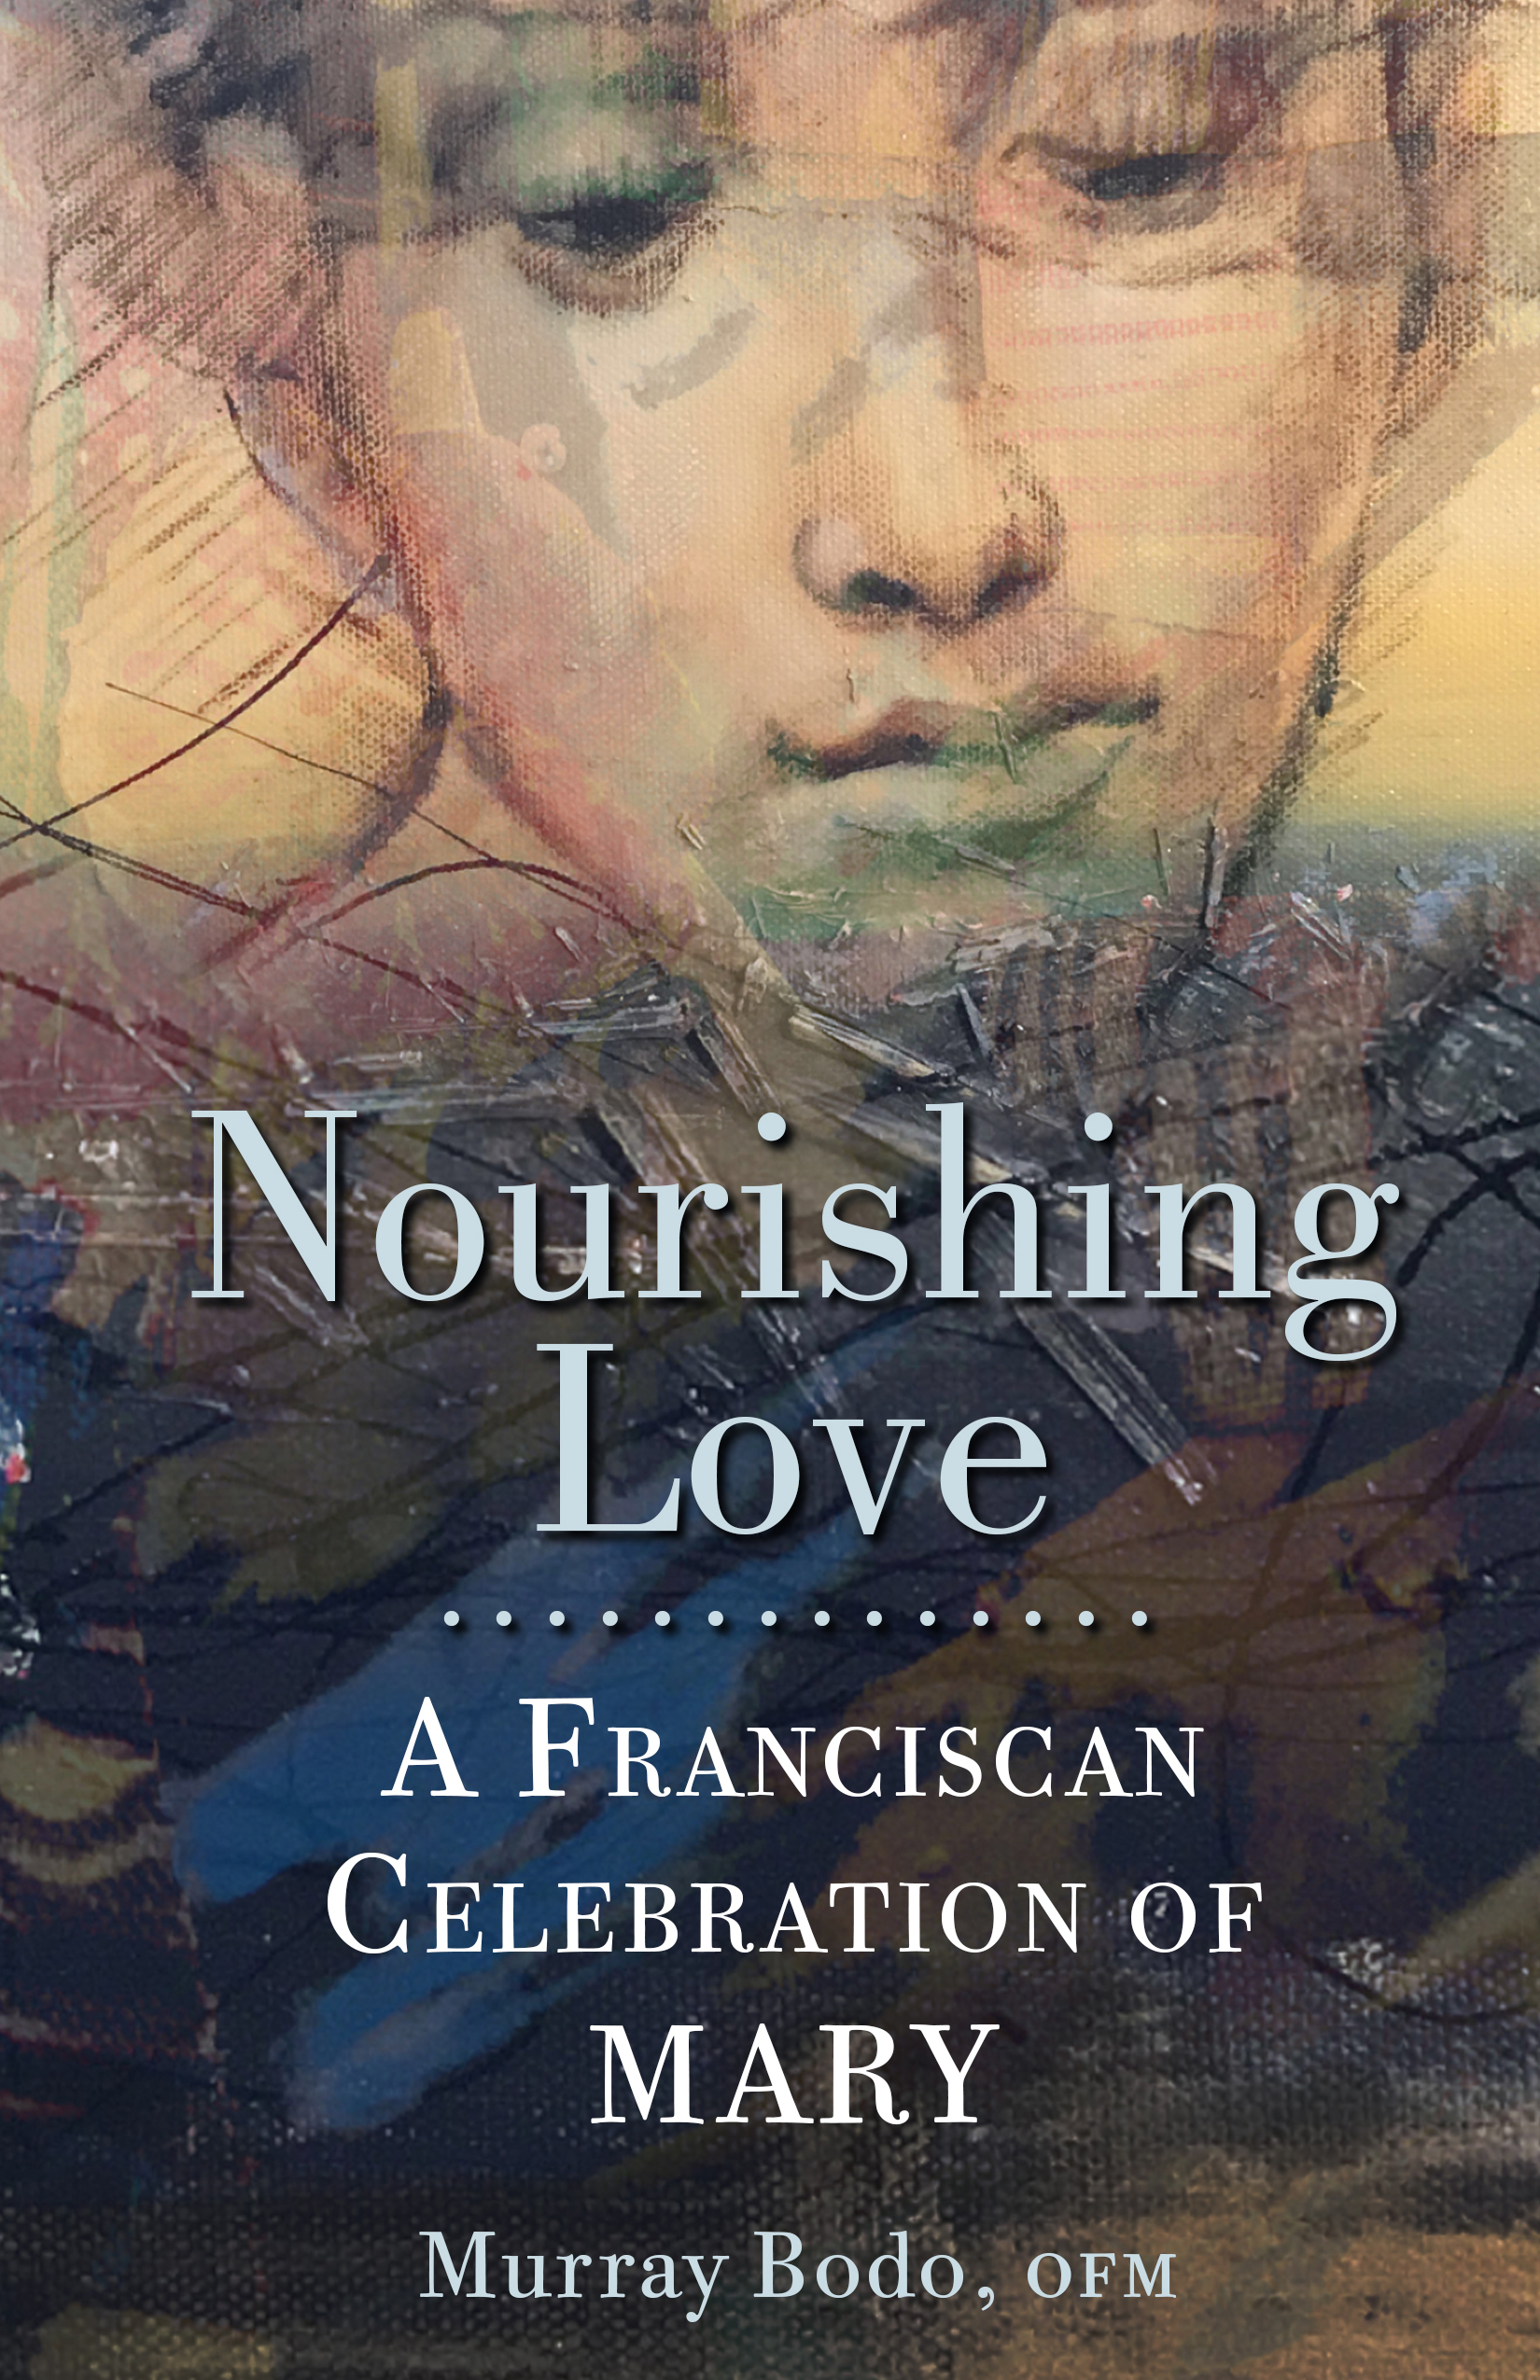 Nourishing Love